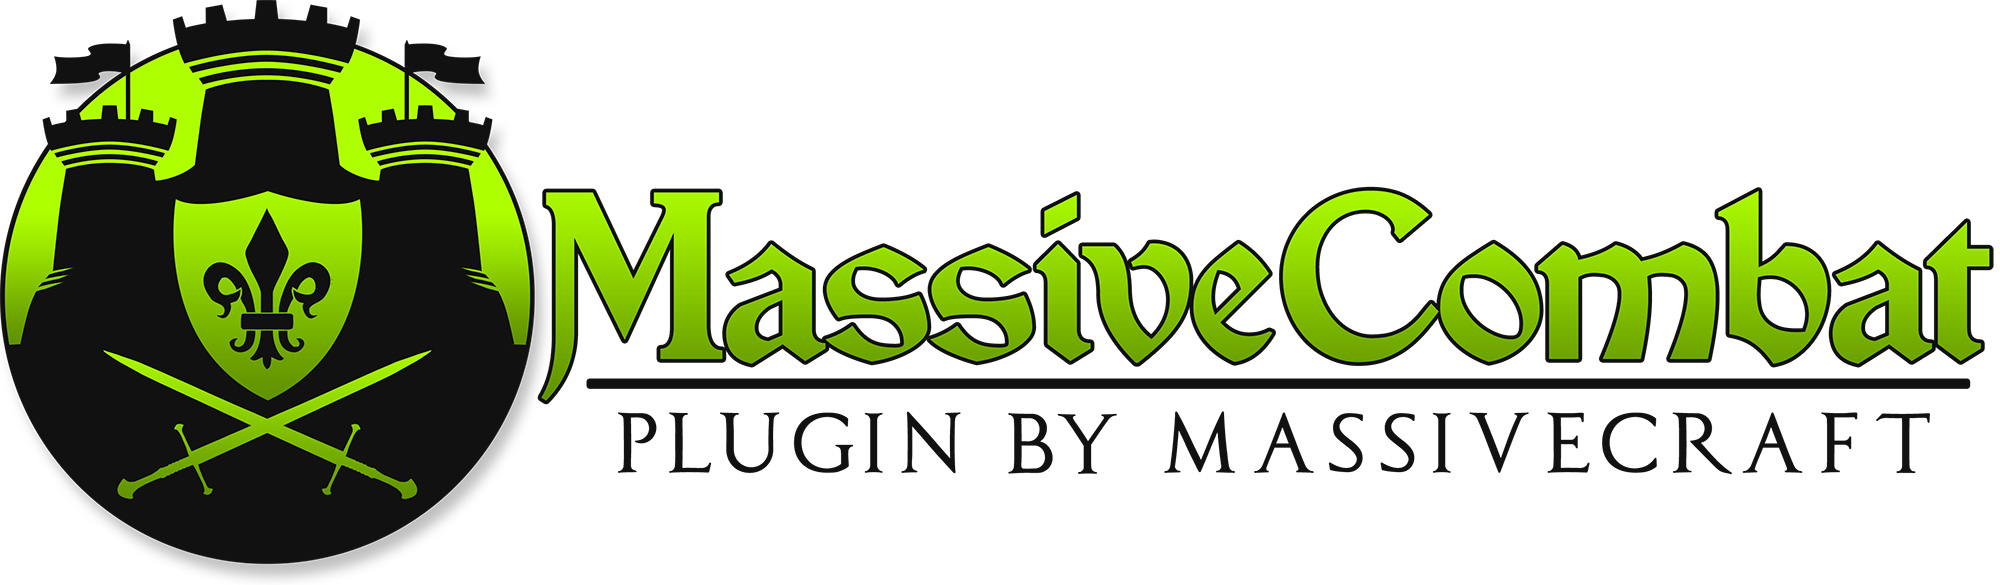 massivecraft-logotype-plugin-massivecombat-2000